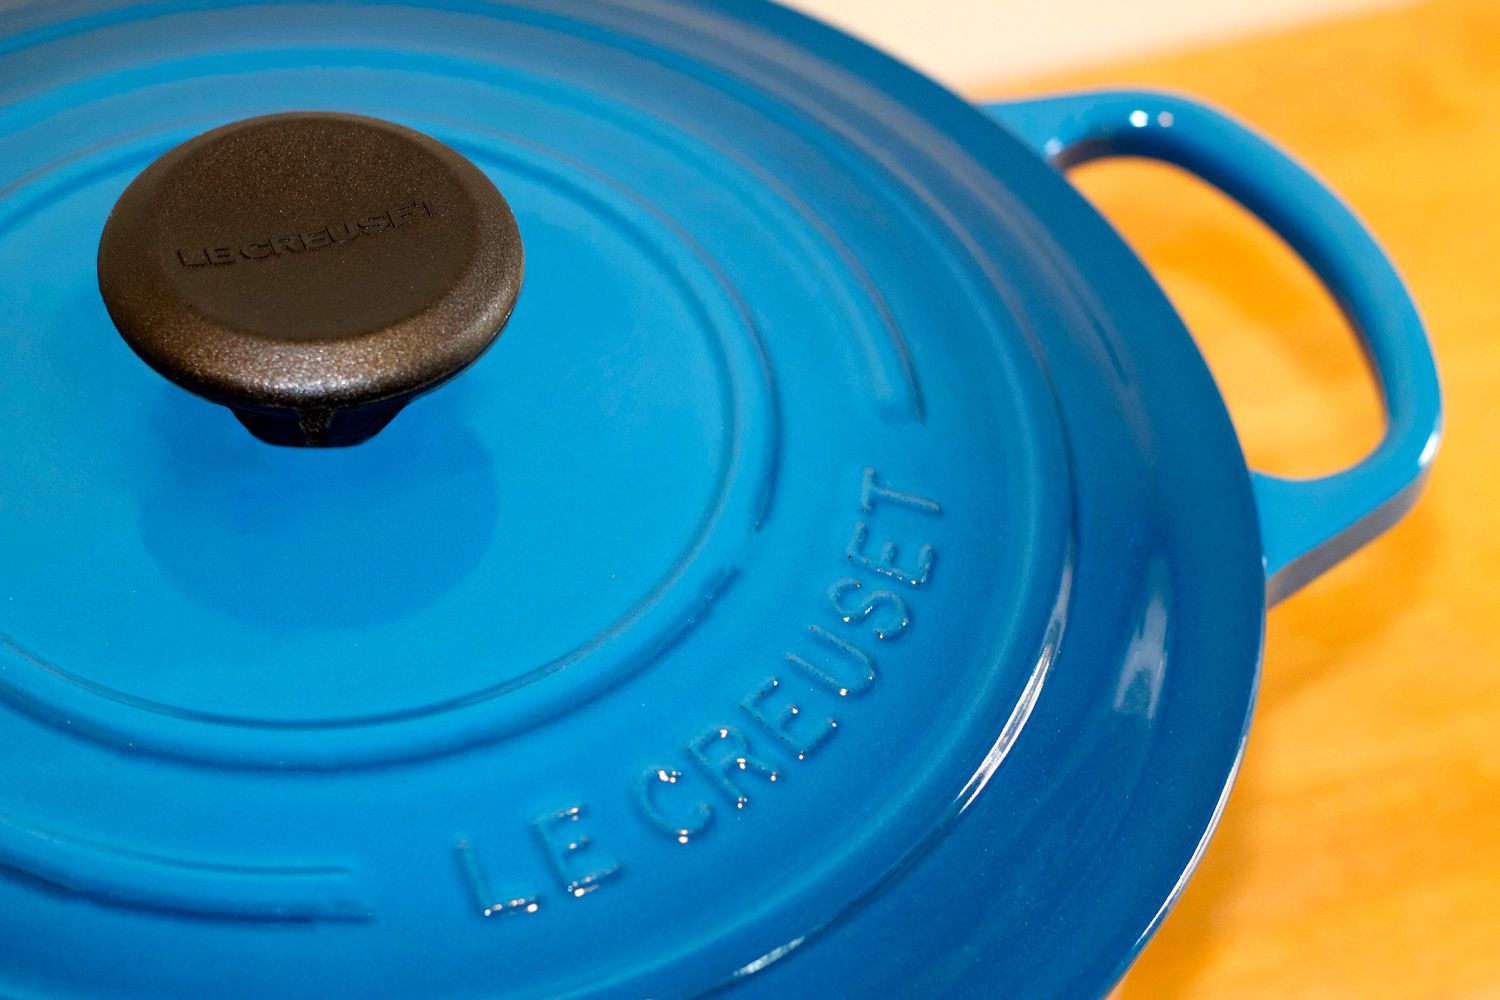 Le Creuset Signature Round Dutch Oven Review Where Style Meets Substance